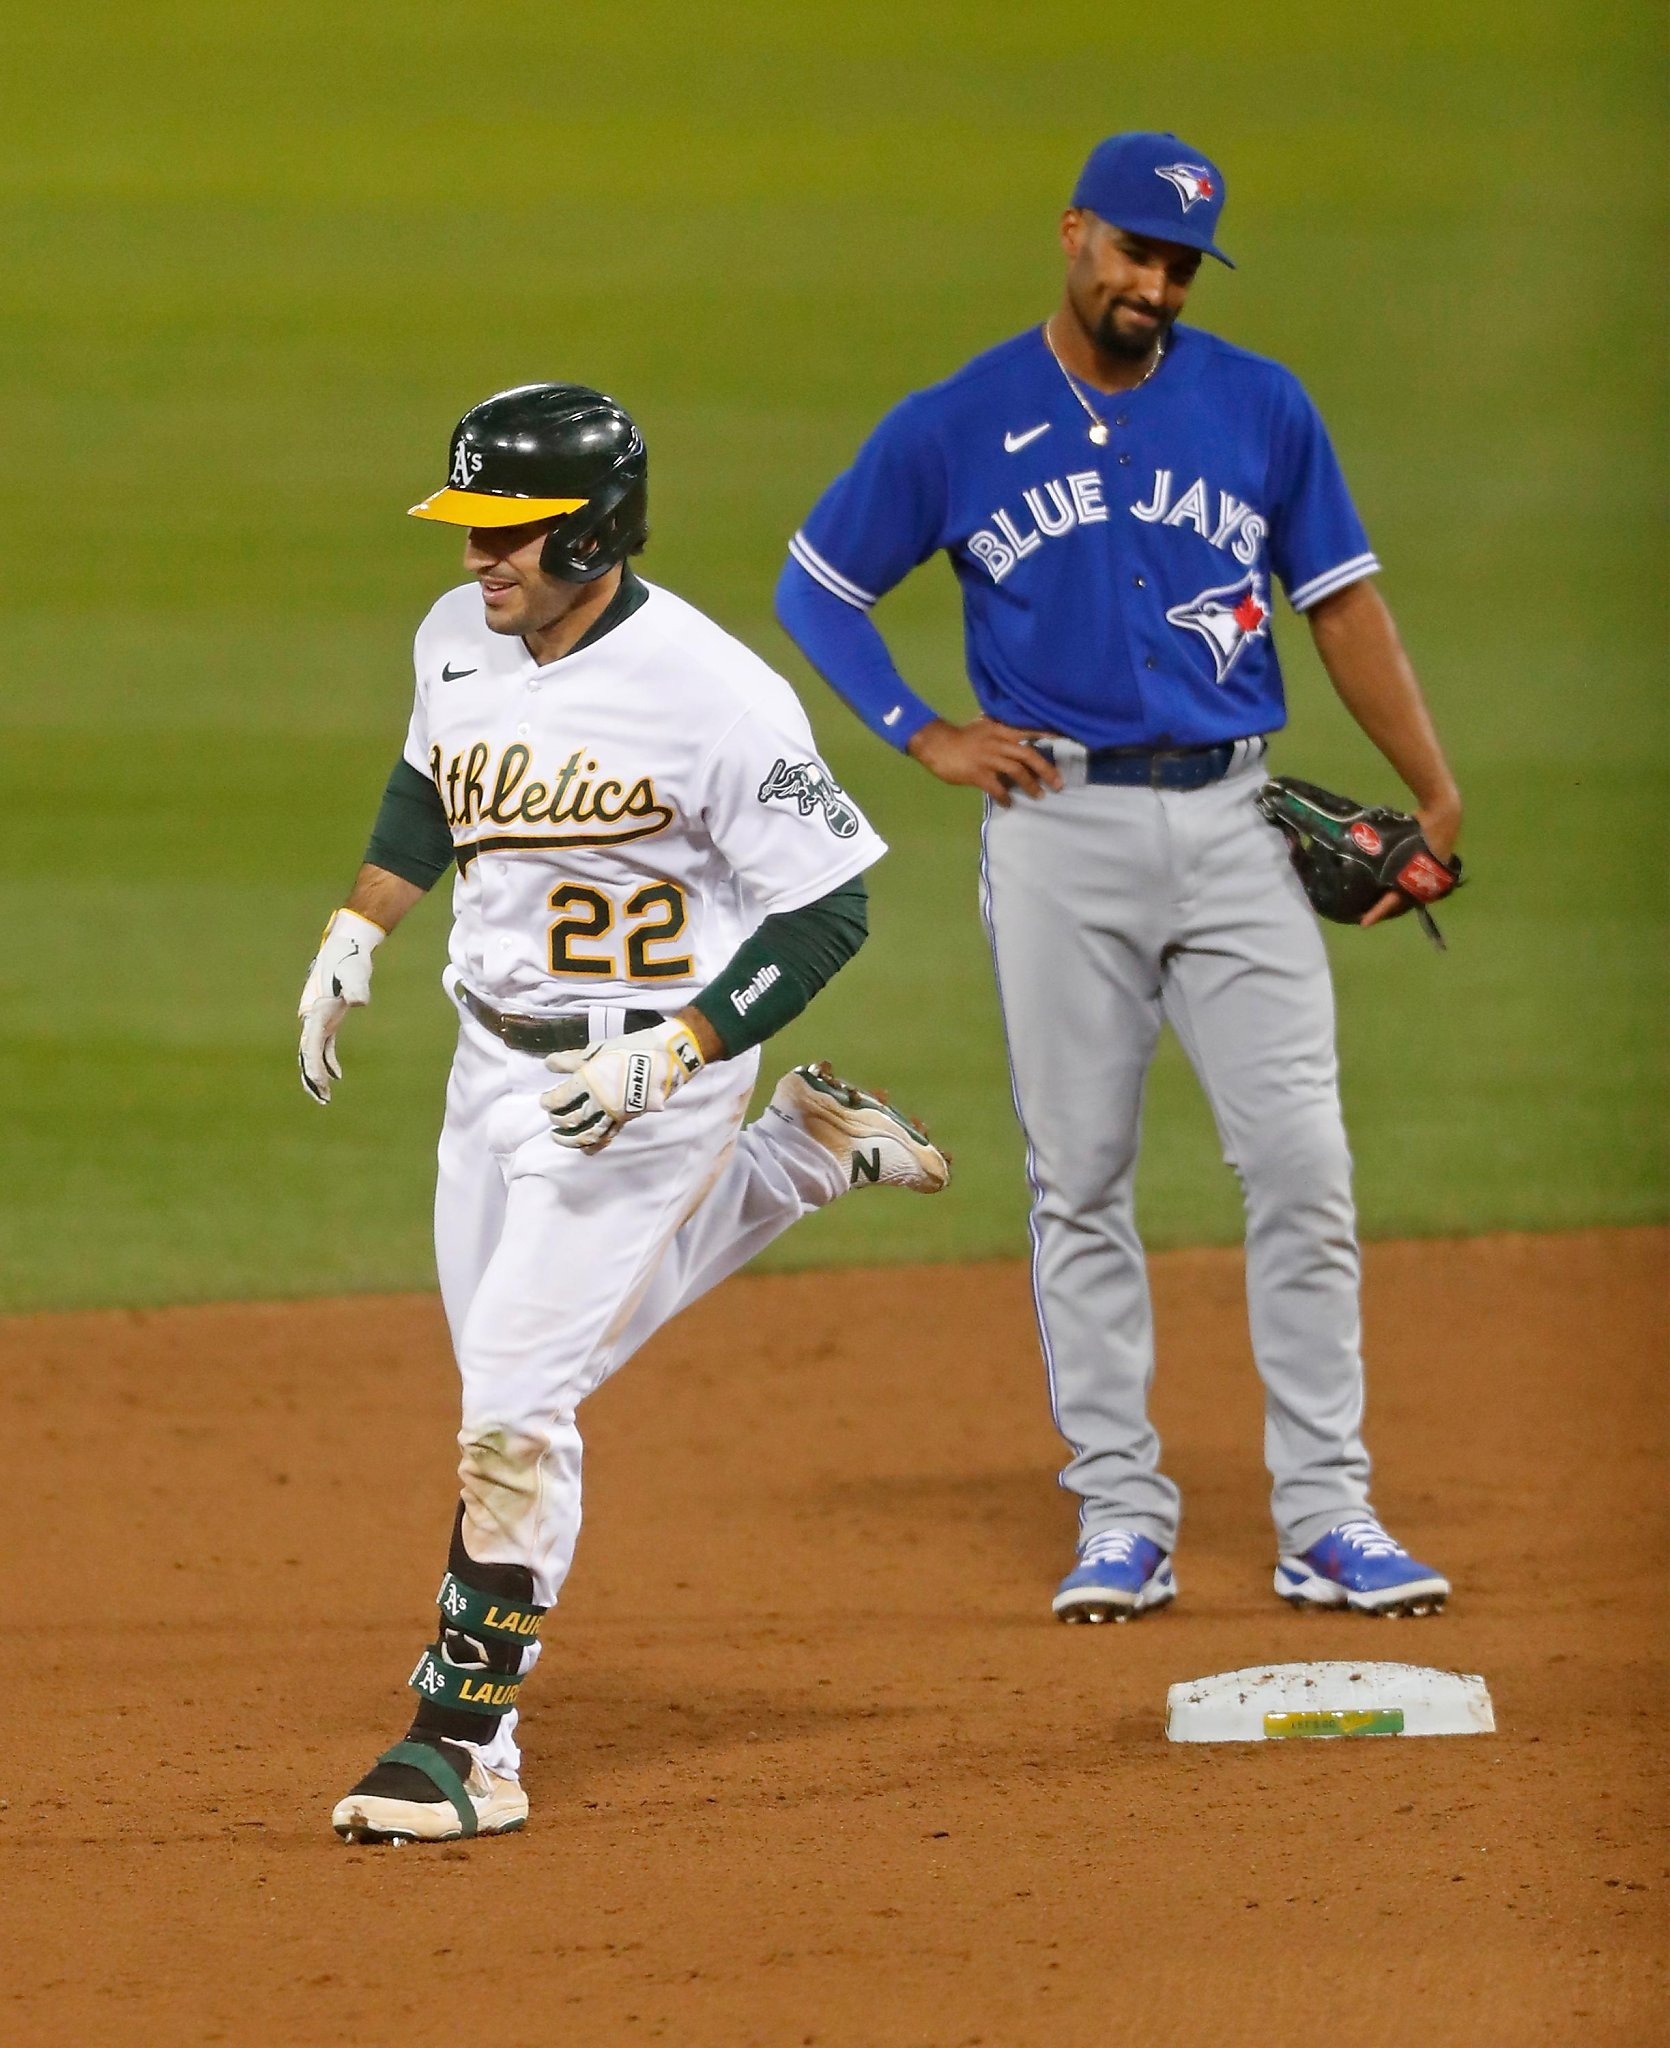 A's edge Blue Jays with another Ramón Laureano home run the difference